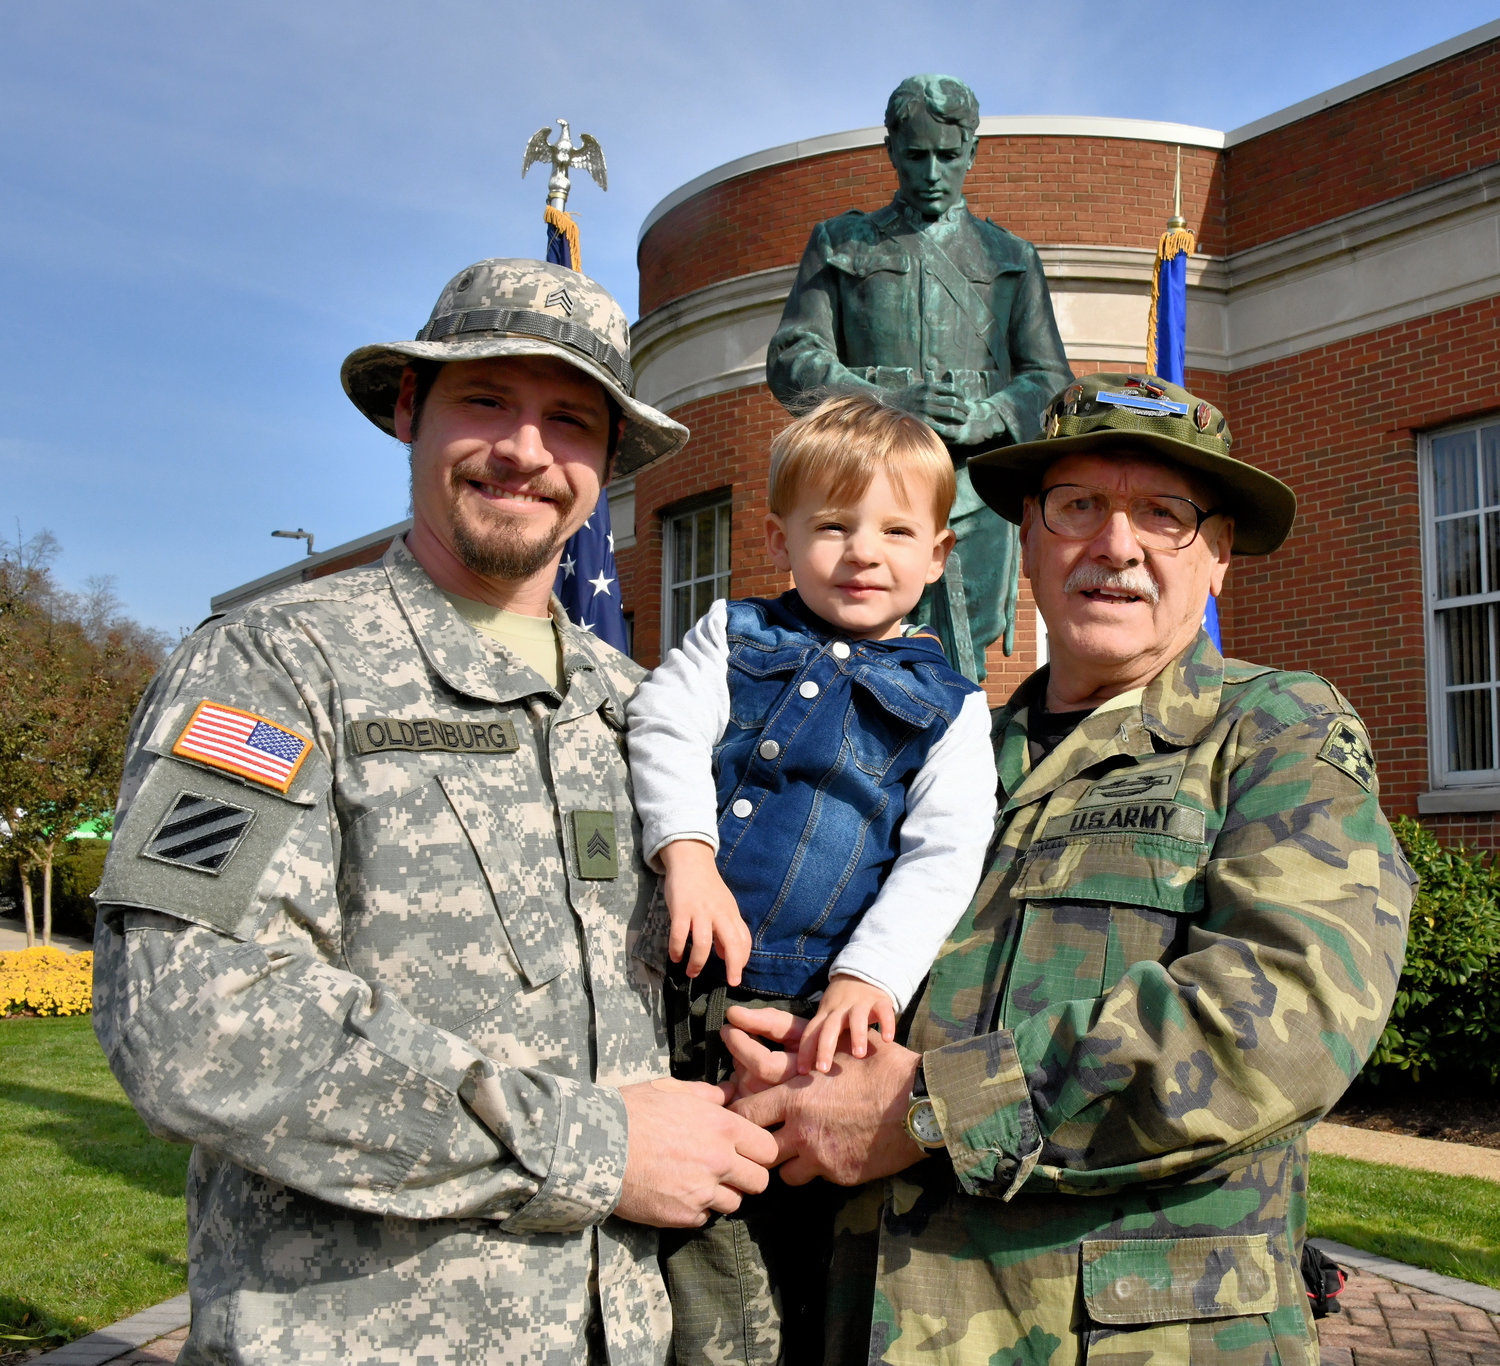 Honoree Ronald Oldenburg, right, who fought in Vietnam, celebrated Veterans Day with his son Ron Jr. and grandson Stone Oldenburg.